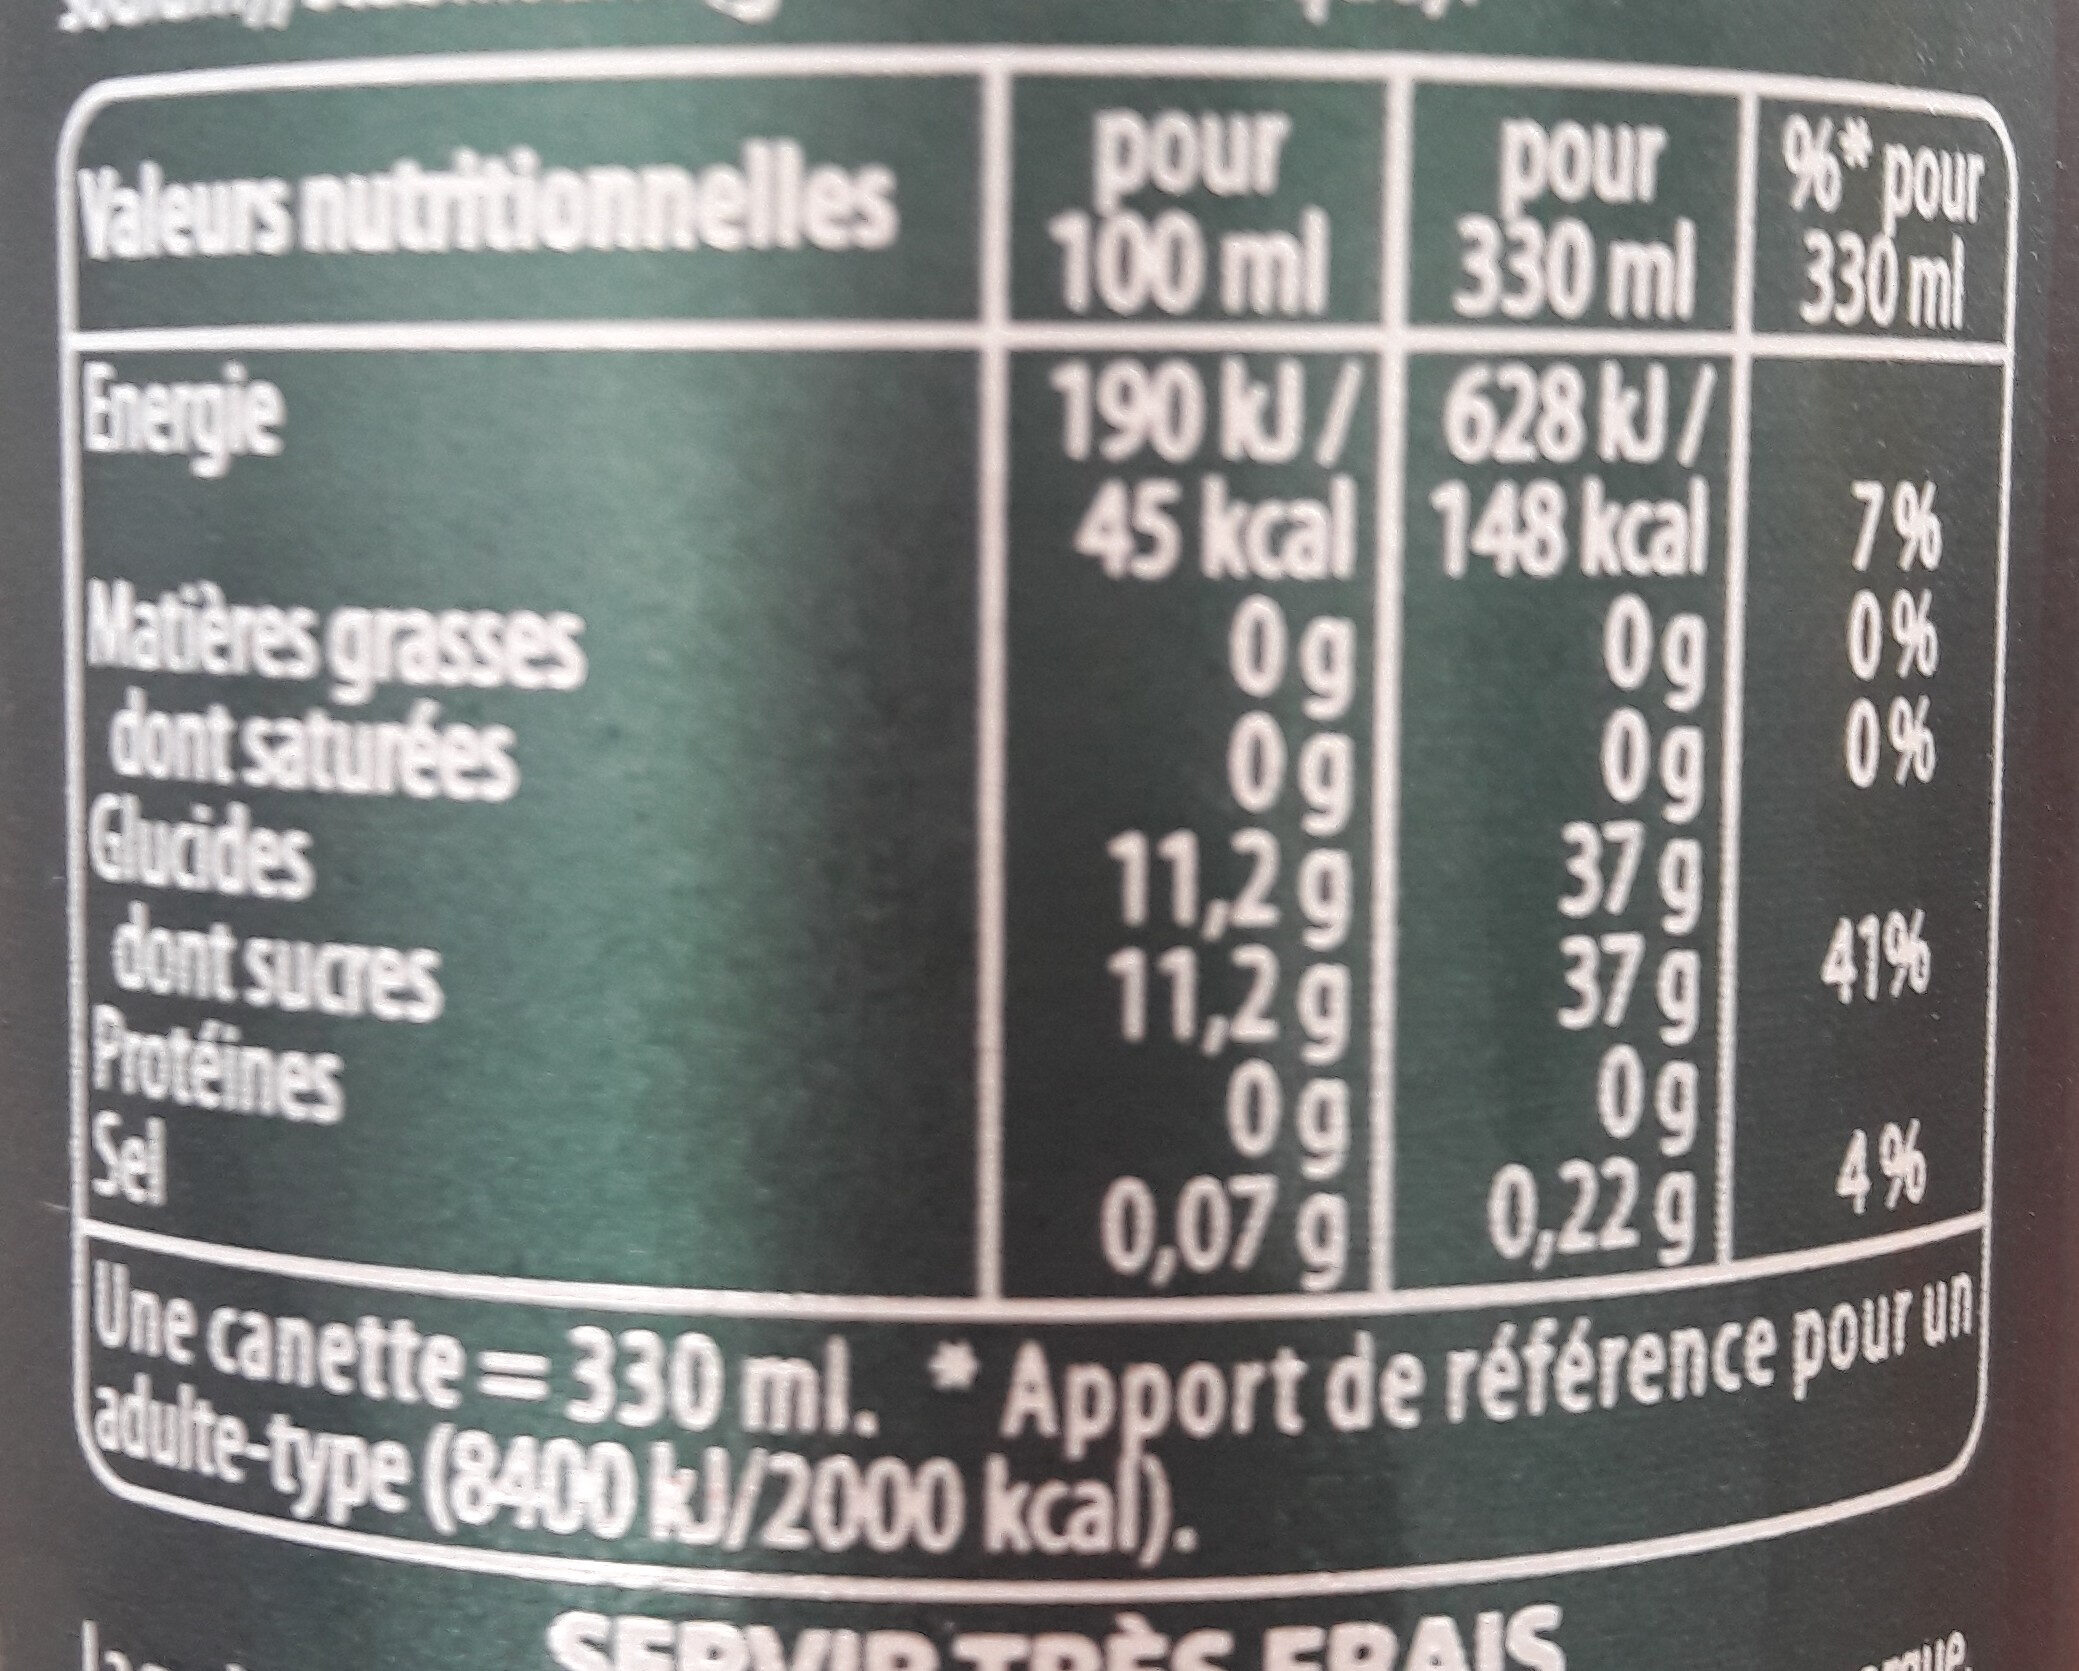 SEVEN UP saveur Mojito - Informations nutritionnelles - fr